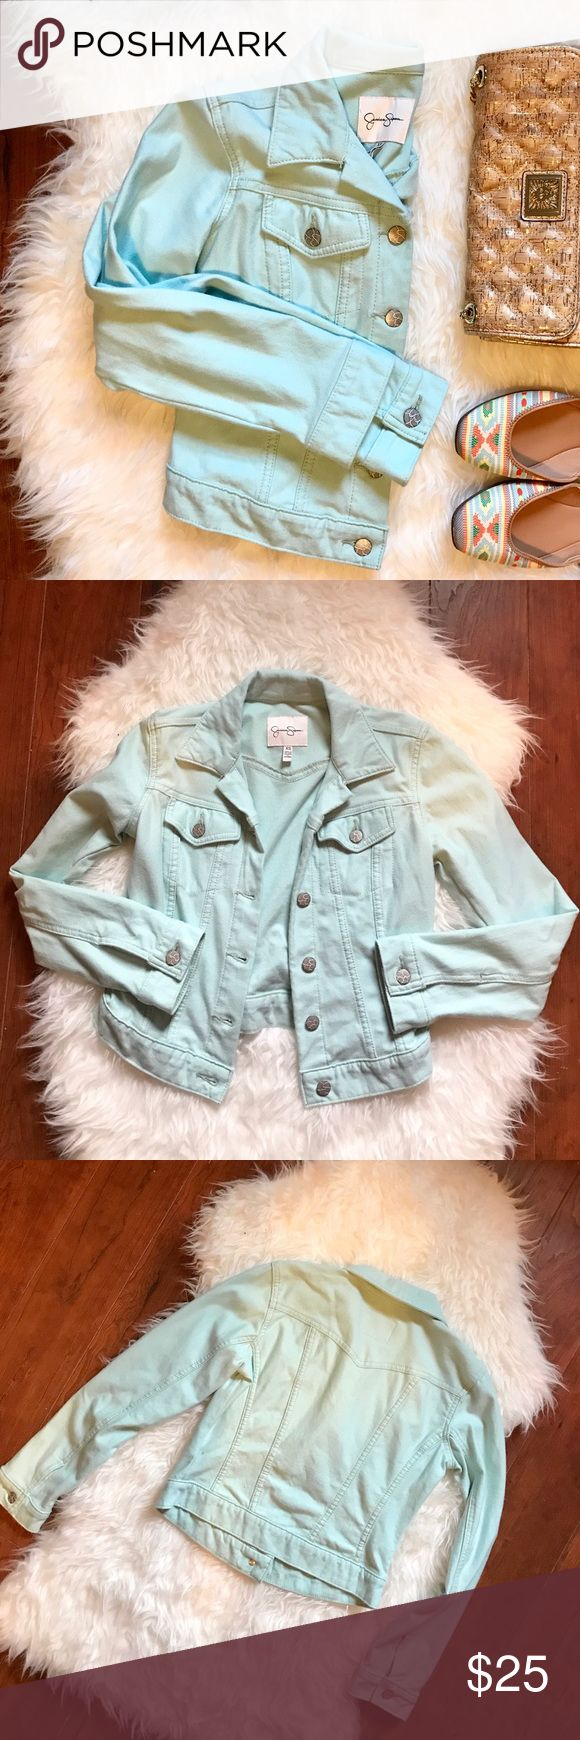 "Jessica Simpson Sky Blue Jean Jacket Make a statement with this sky blue denim jacket by Jessica Simpson. With its unique color, short cropped cut and silver signature buttons this jacket is the perfect to finish to that special outfit. Great for any time of year this Jacket is a closet must have.  Approximately  15"" Pit to Pit 17.5"" Shoulder to Hem  Also available from Covershot: Steve Madden Flats  ✅ Offers welcome through offer button ✅ Bundles welcome through bundle feature ✅ Questions…"